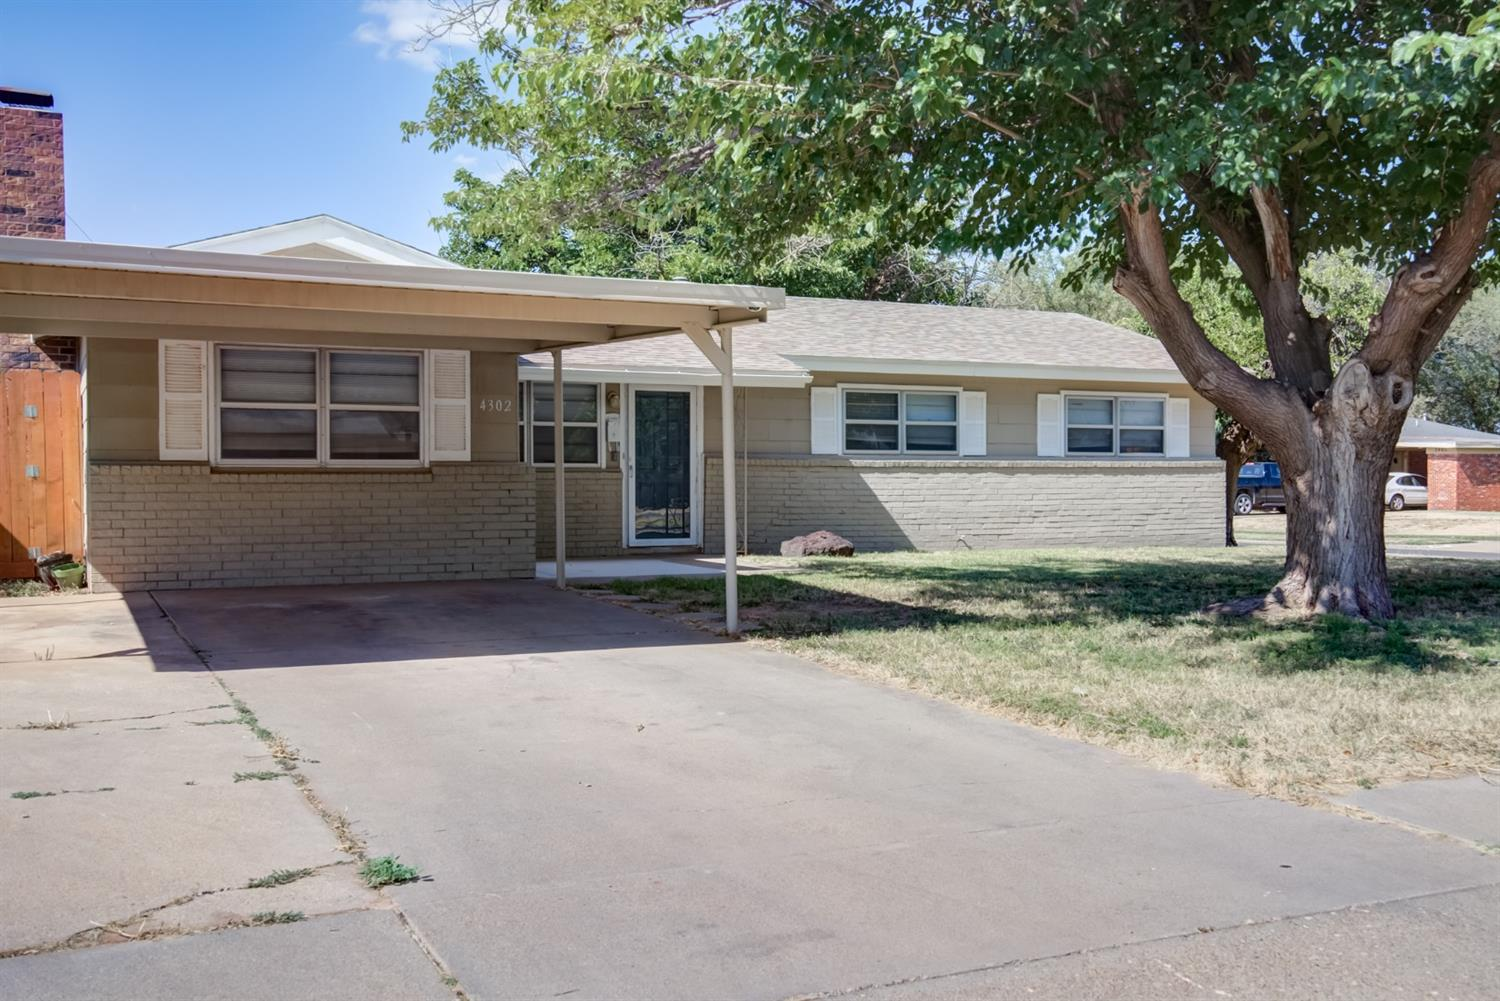 4302 29th Street, Lubbock in Lubbock County, TX 79410 Home for Sale